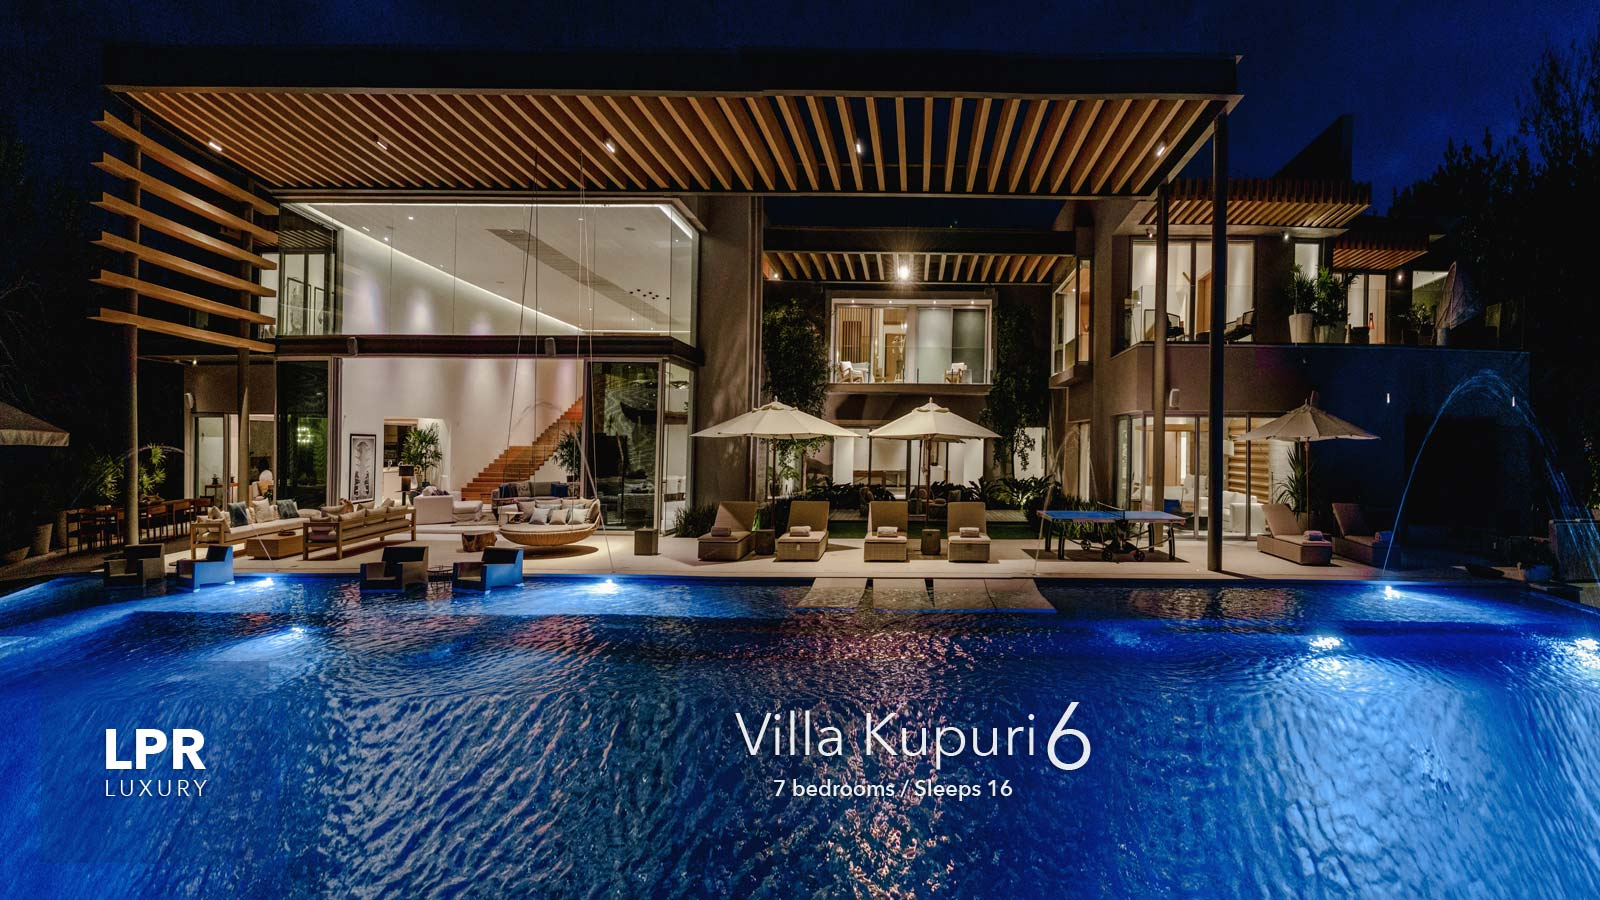 Villa Kupuri 6 - Luxury Punta Mita Real Estate and Vacation Rentals Villas